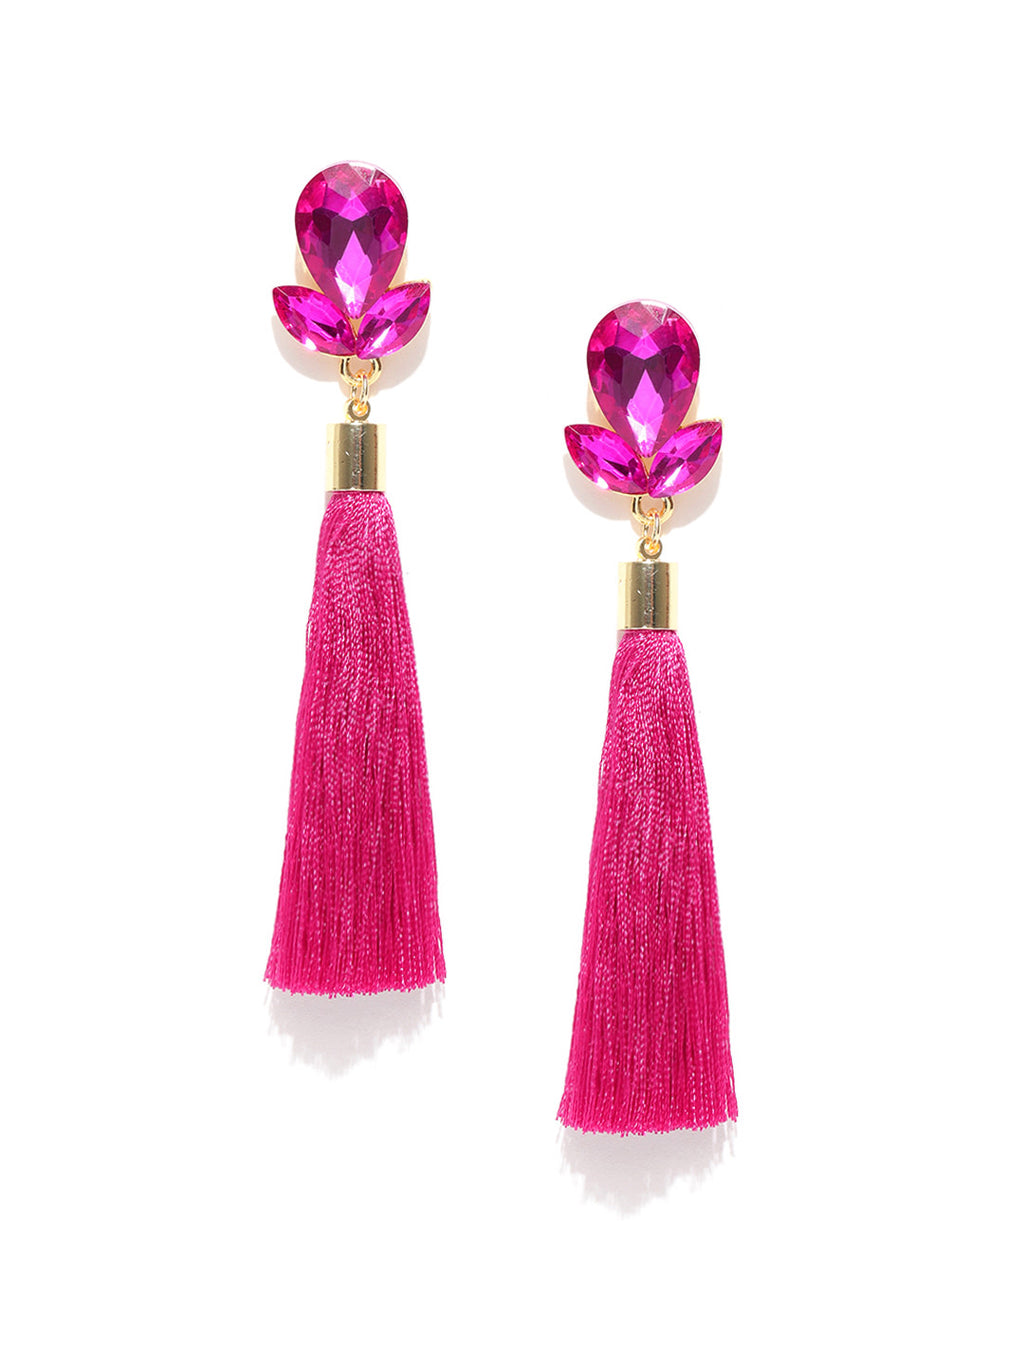 PINK GOLD- PLATED STONE-STUDDED TASSELLED DROP EARRINGS